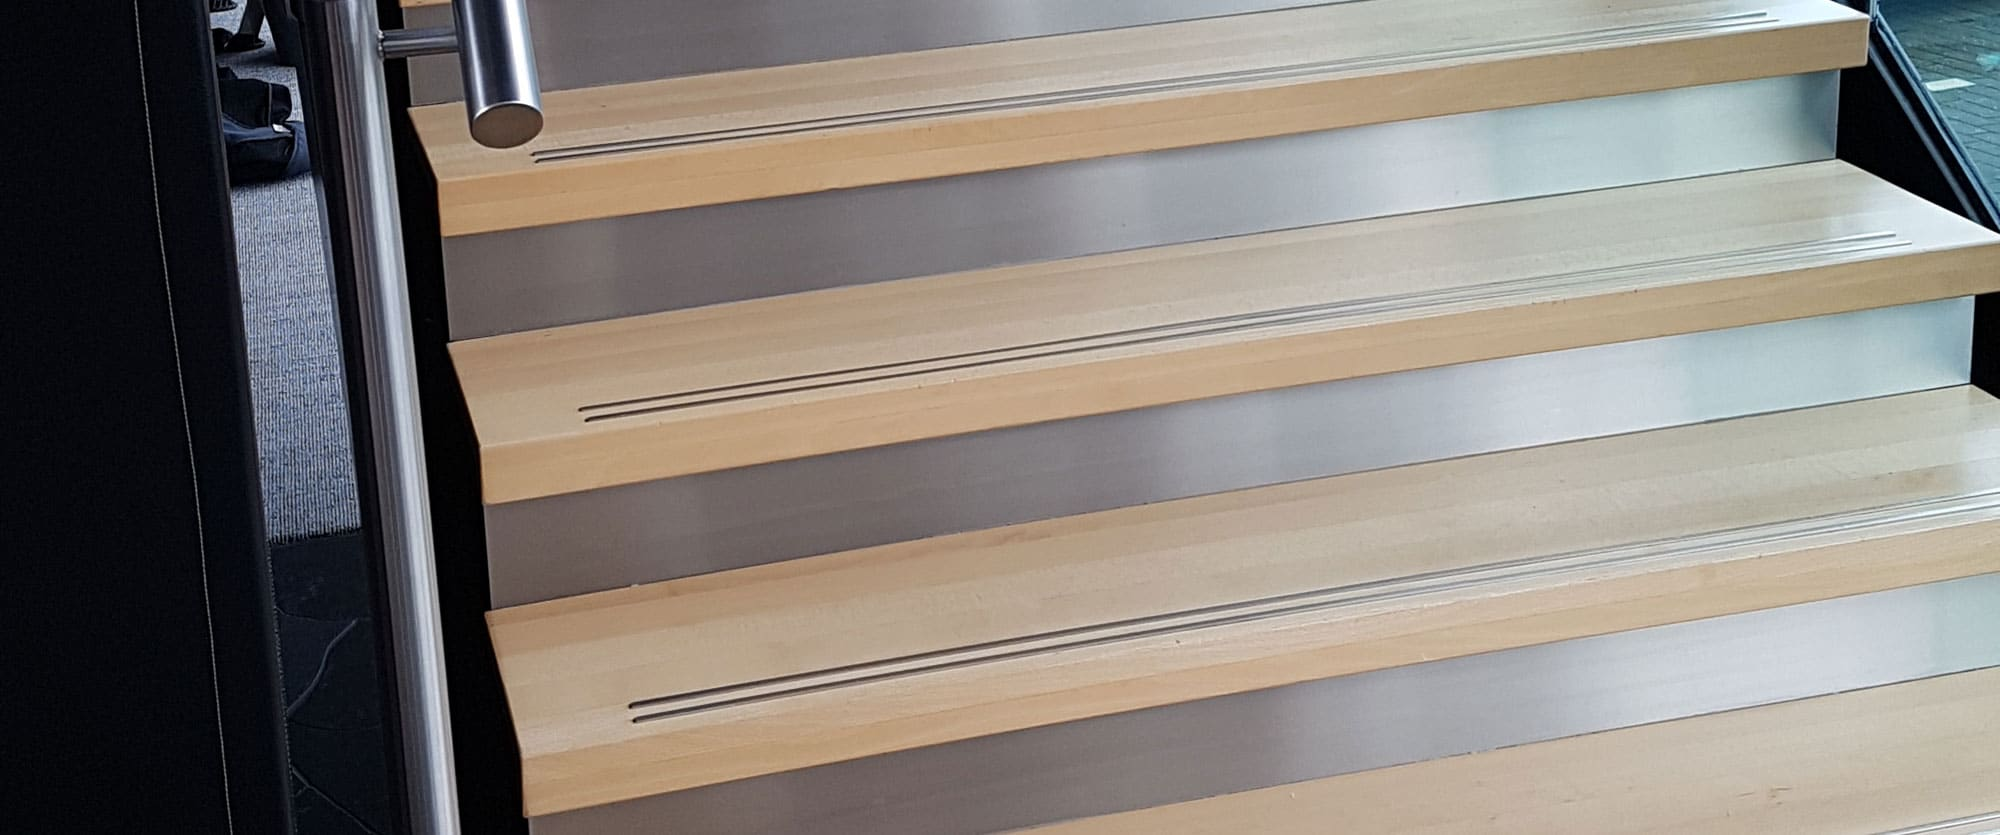 Two step anti-slip inserts per wooden stair in office